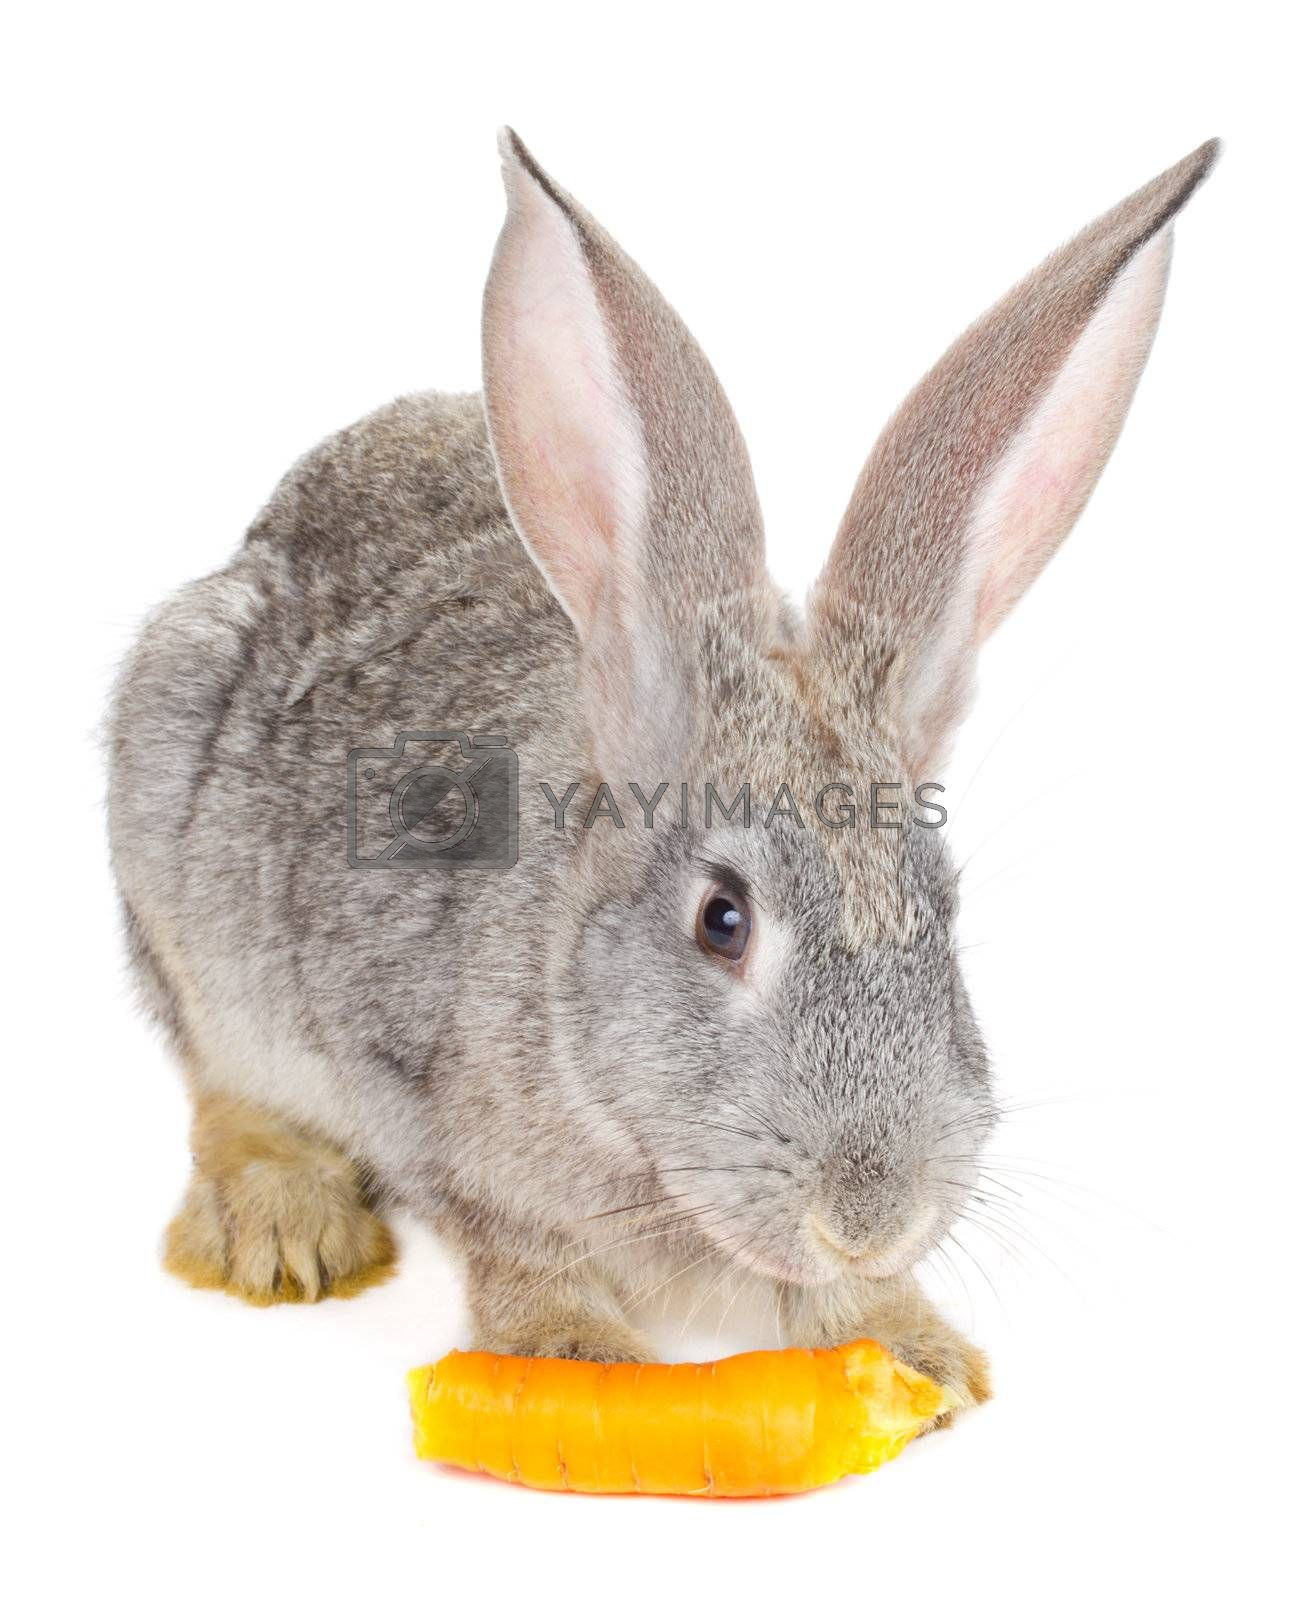 close-up gray rabbit eating the carrot, isolated on white